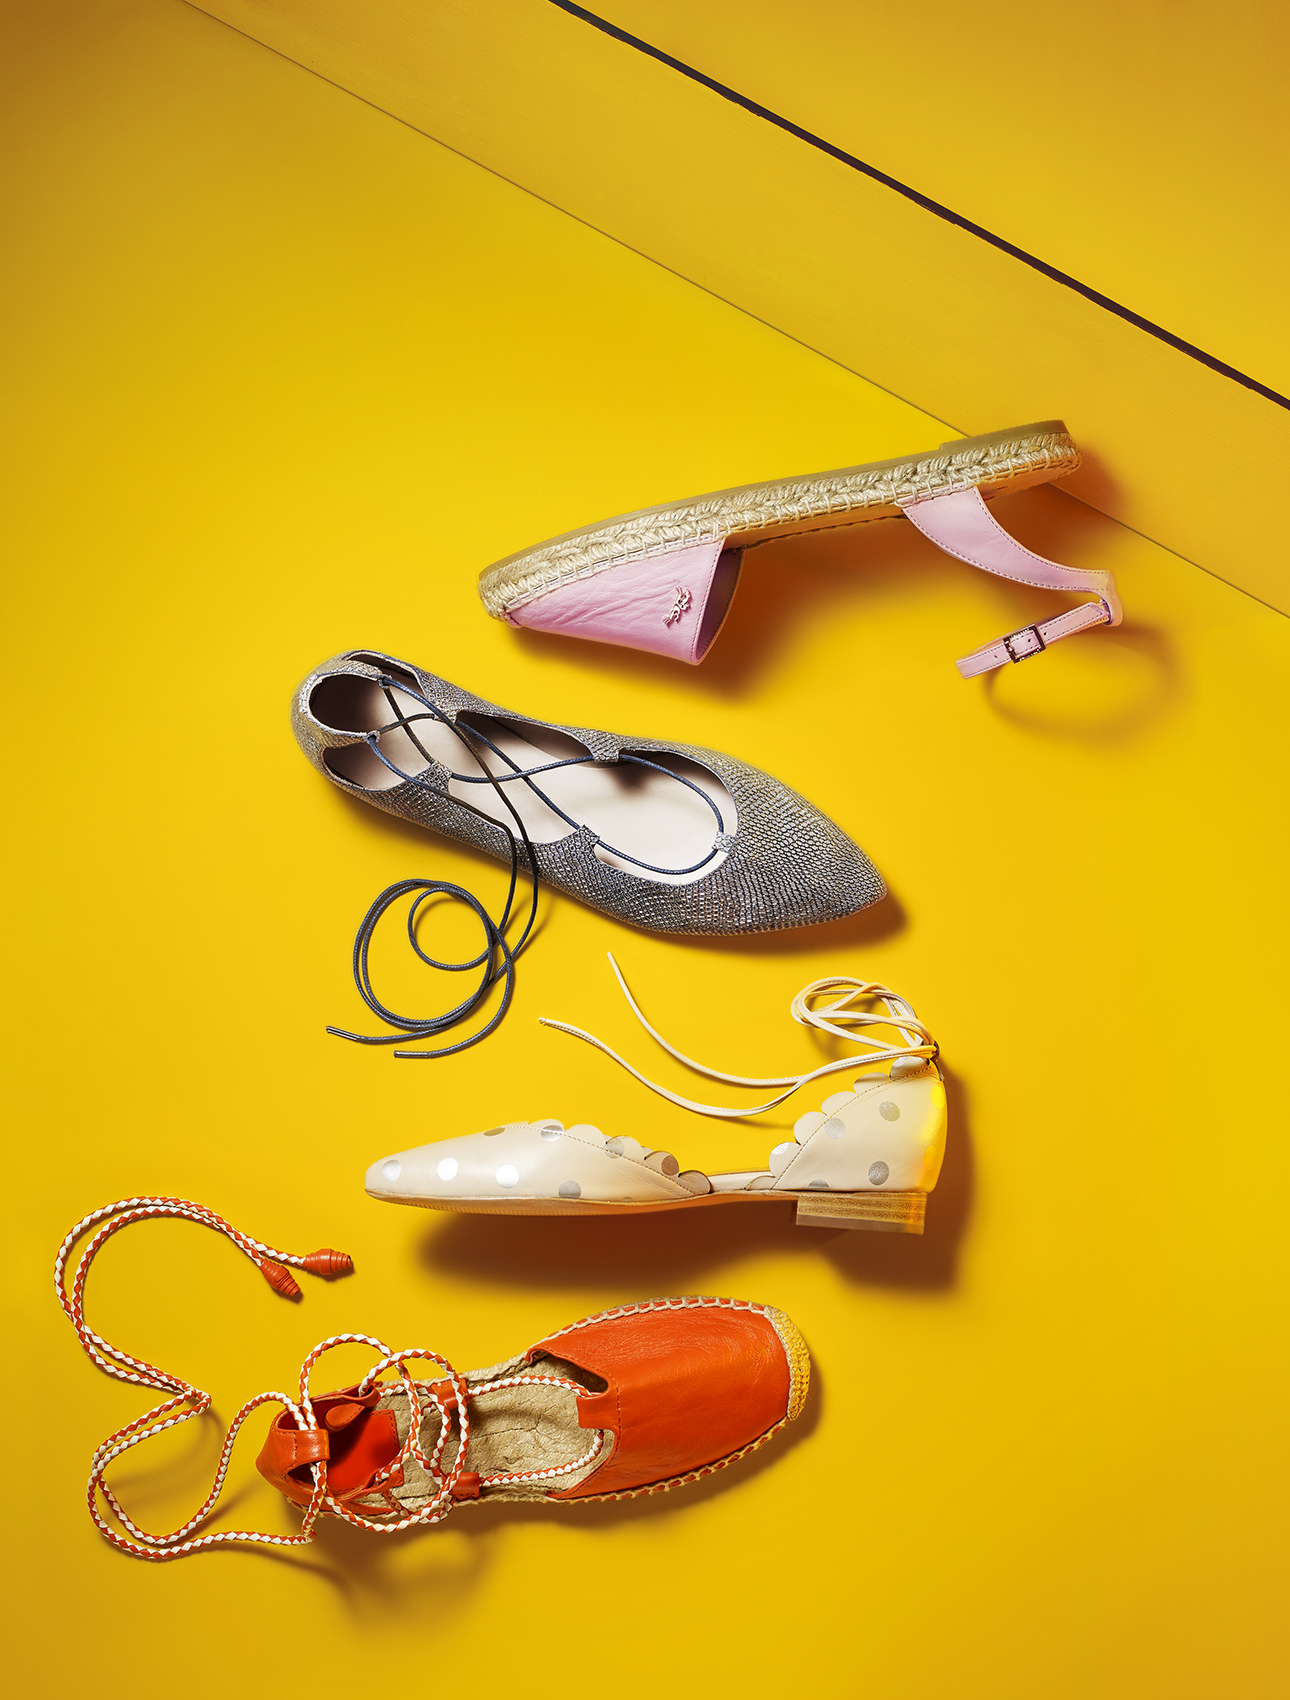 Ankle wrap flats against yellow background